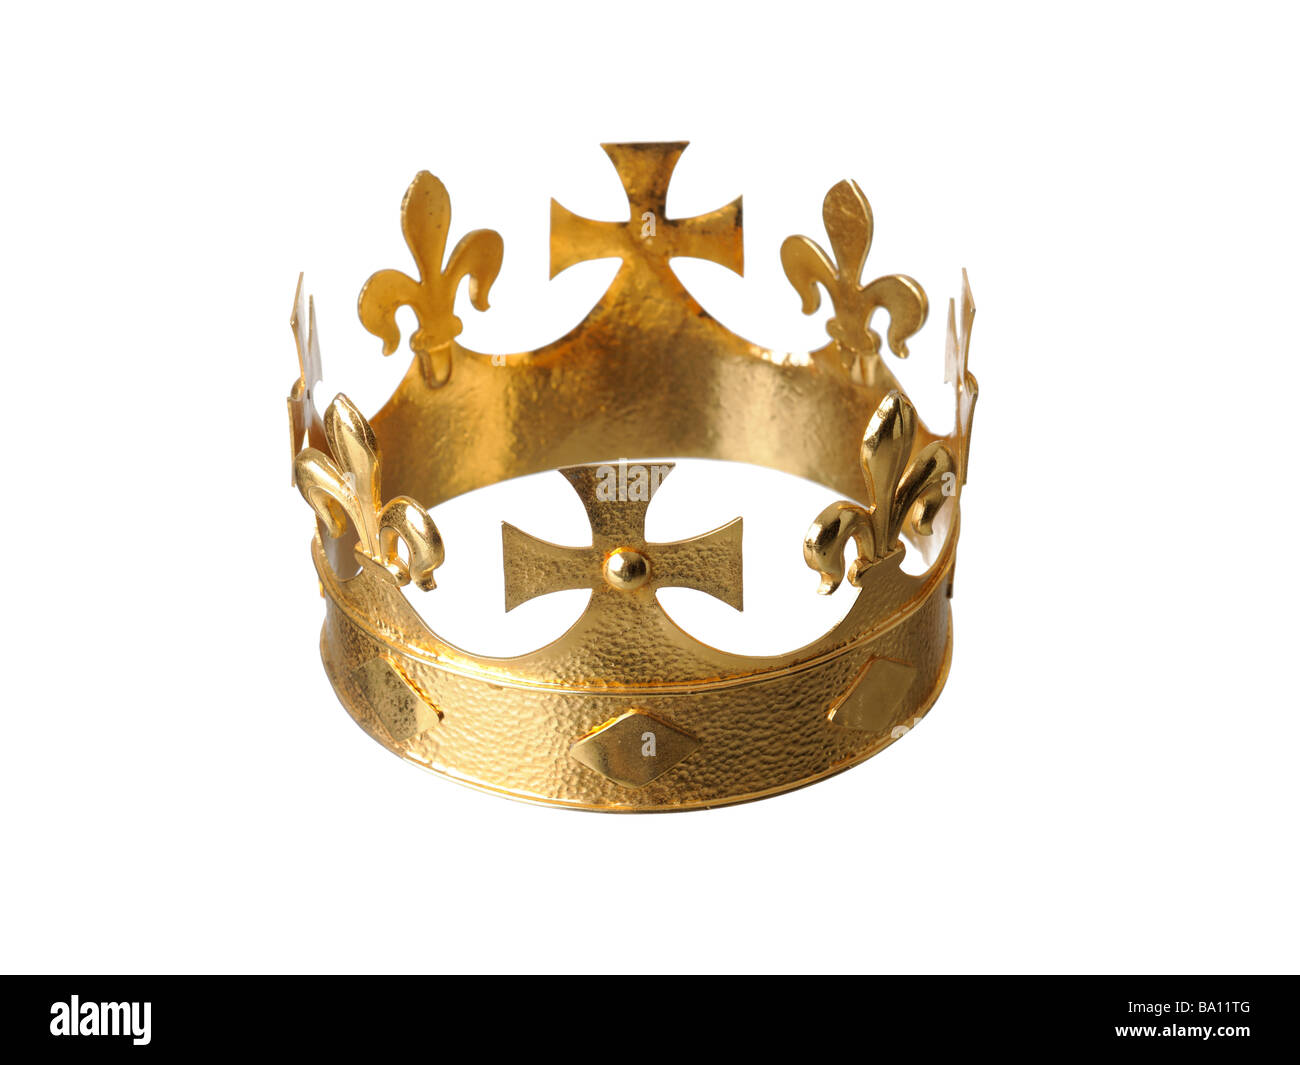 Golden Crown - Stock Image